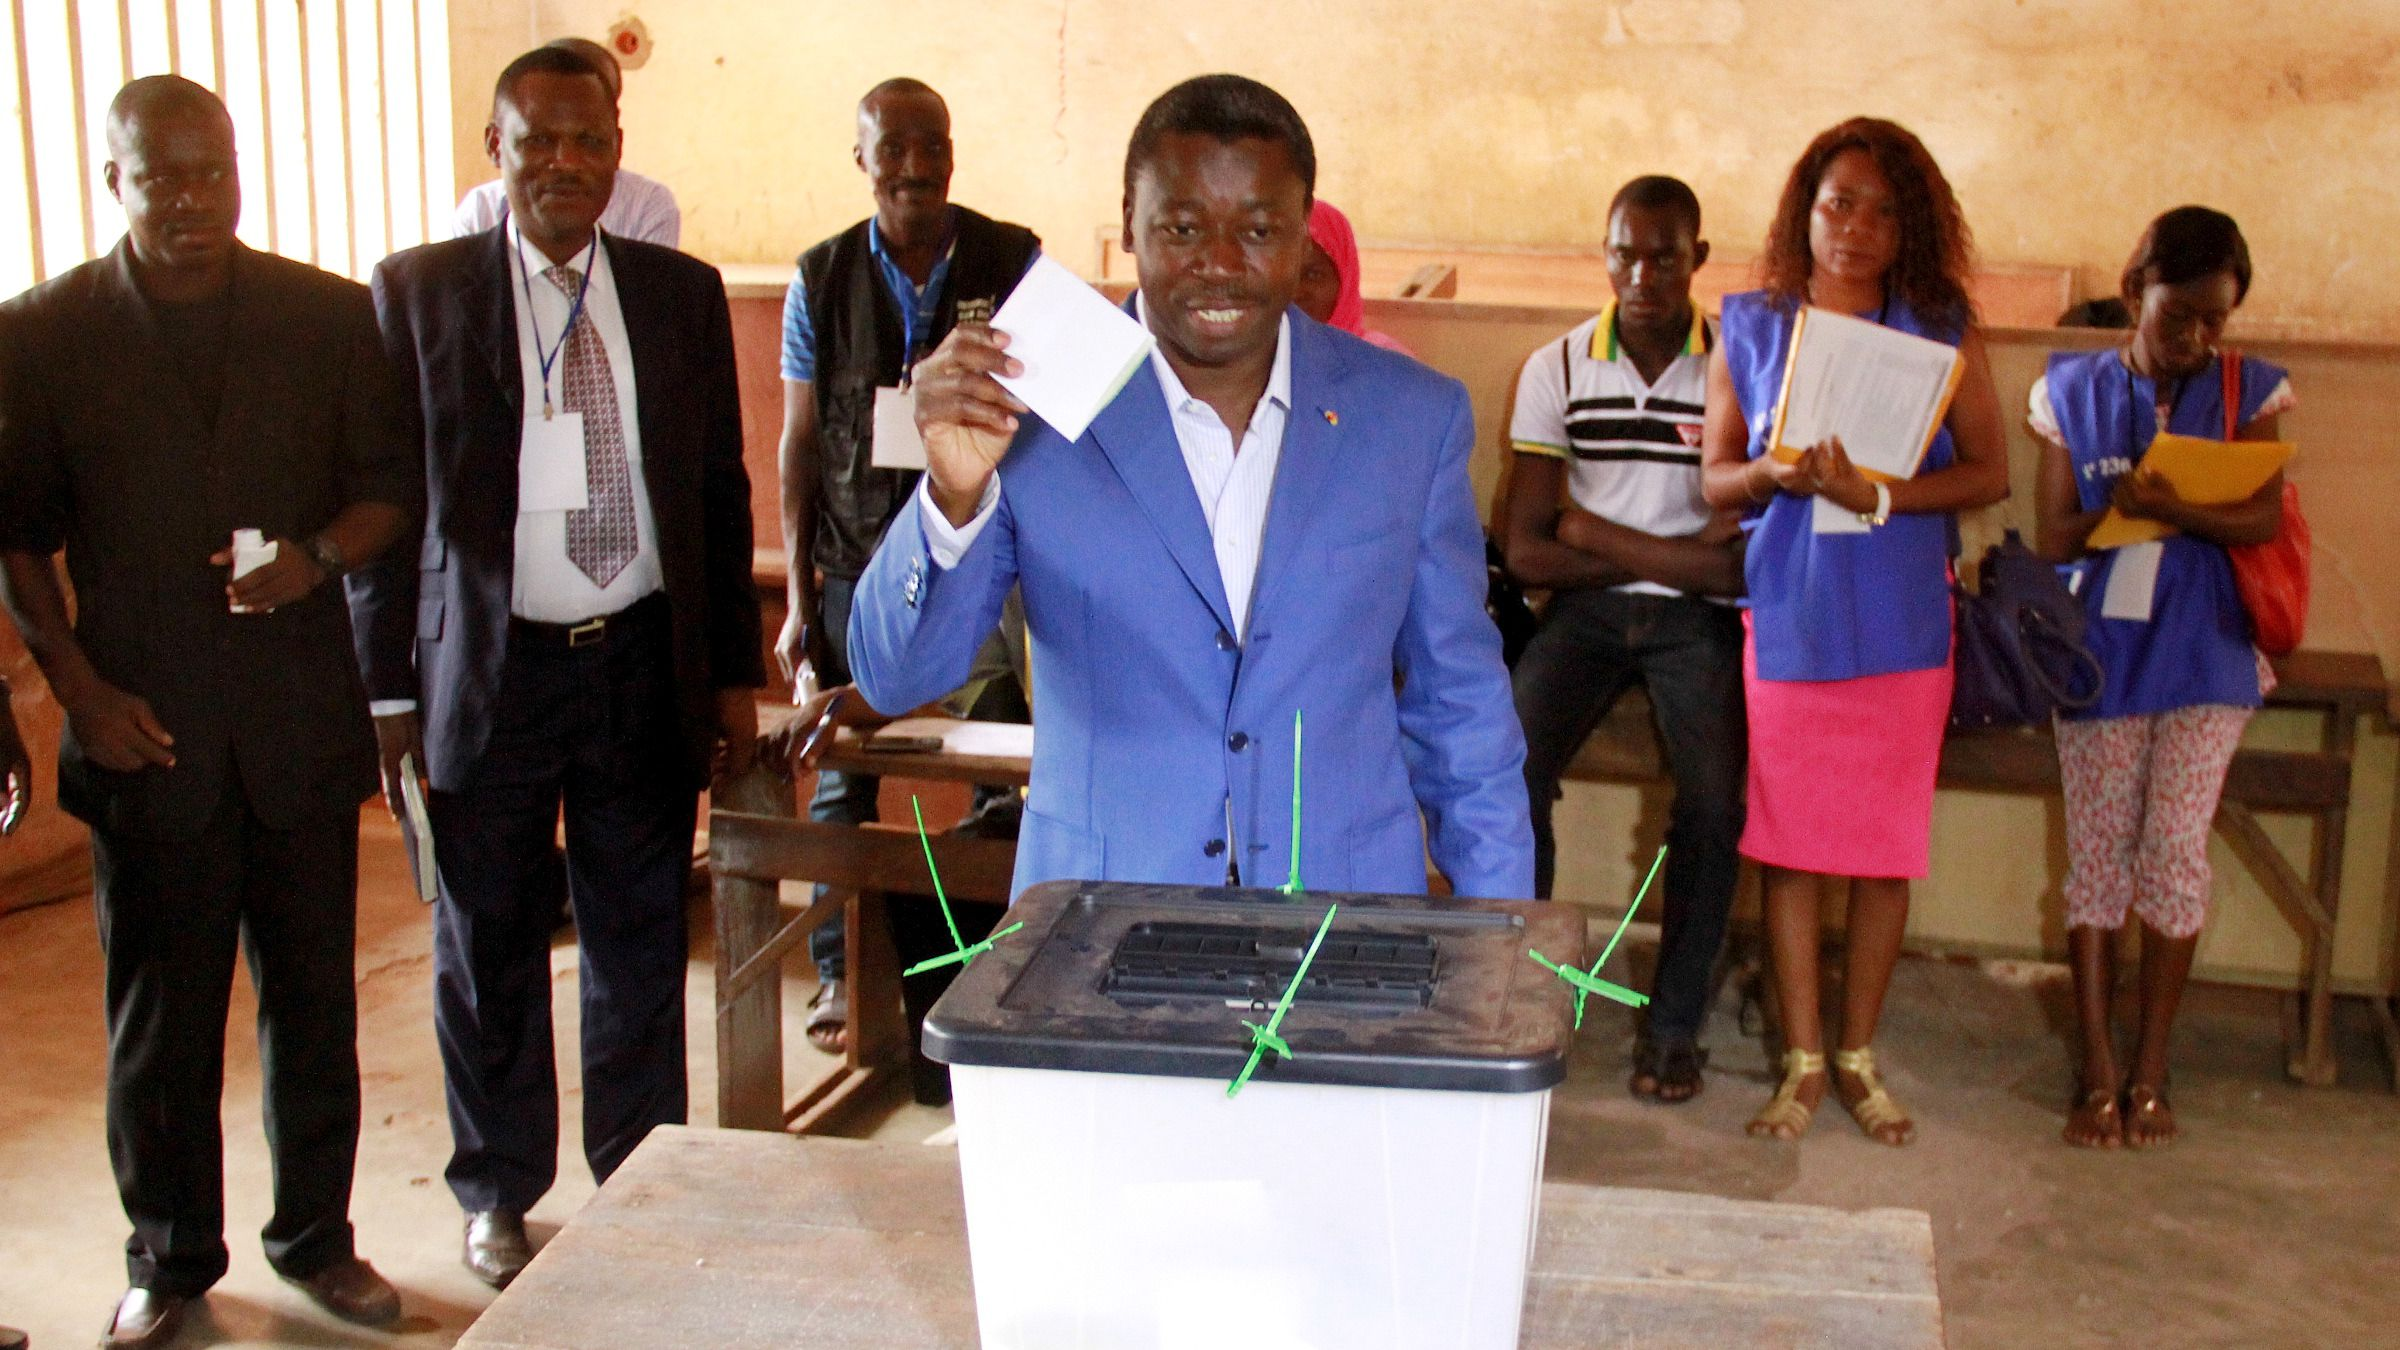 Incumbent presidential candidate Faure Gnassingbe casts his ballot in Lome April 25, 2015. Togo began voting on Saturday in an election expected to give President Gnassingbe a third term in power, facing a divided opposition and last minute changes to the tallying of results. Gnassingbe has been president since 2005 when his father died after 38 years in charge. Campaigning has been largely peaceful and there are no signs of the tensions that led to violence in 2005, when hundreds died after the election.